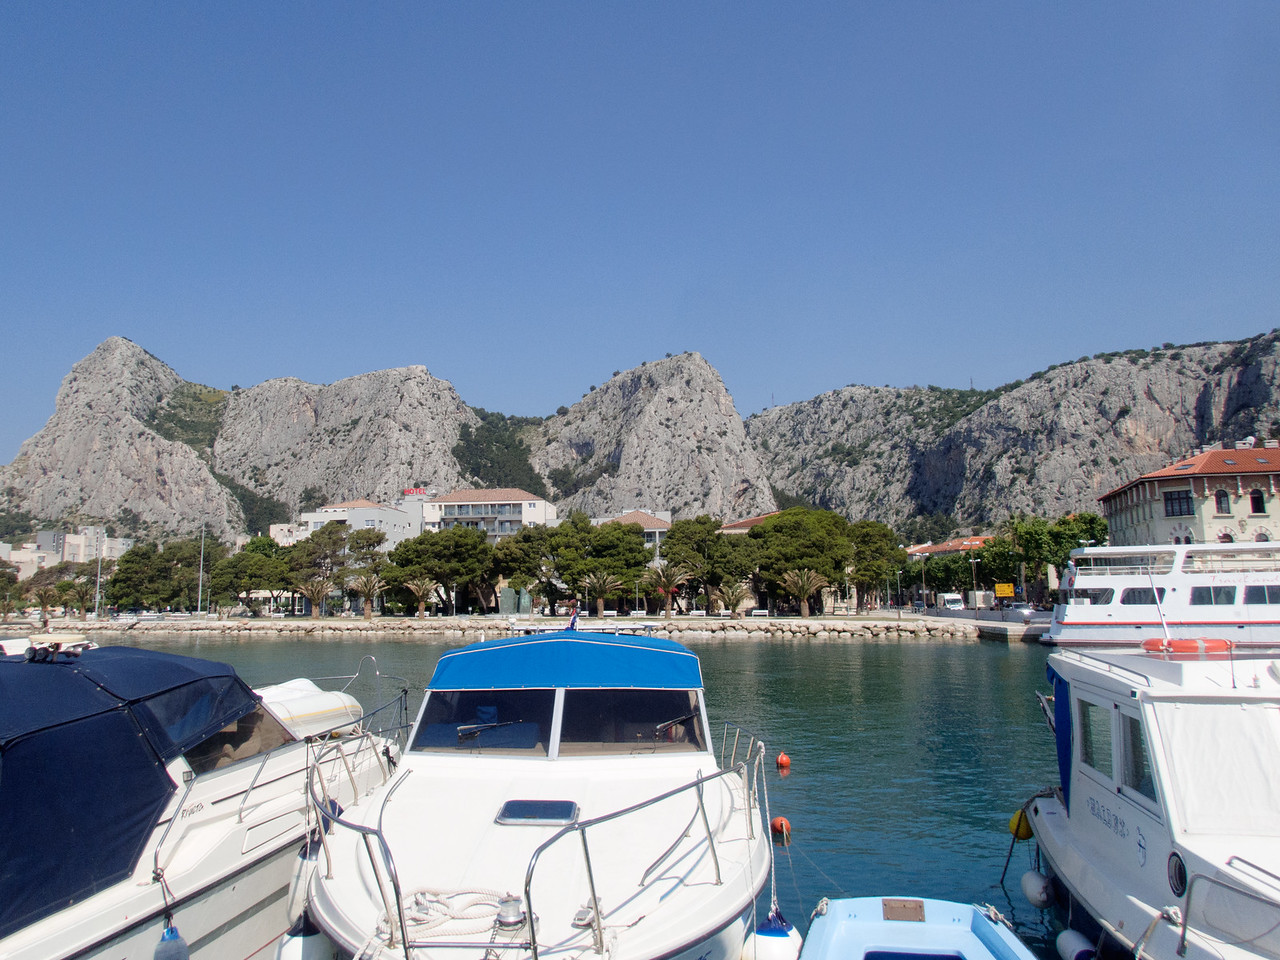 Marina in Omis as we start our ride to go rafting.